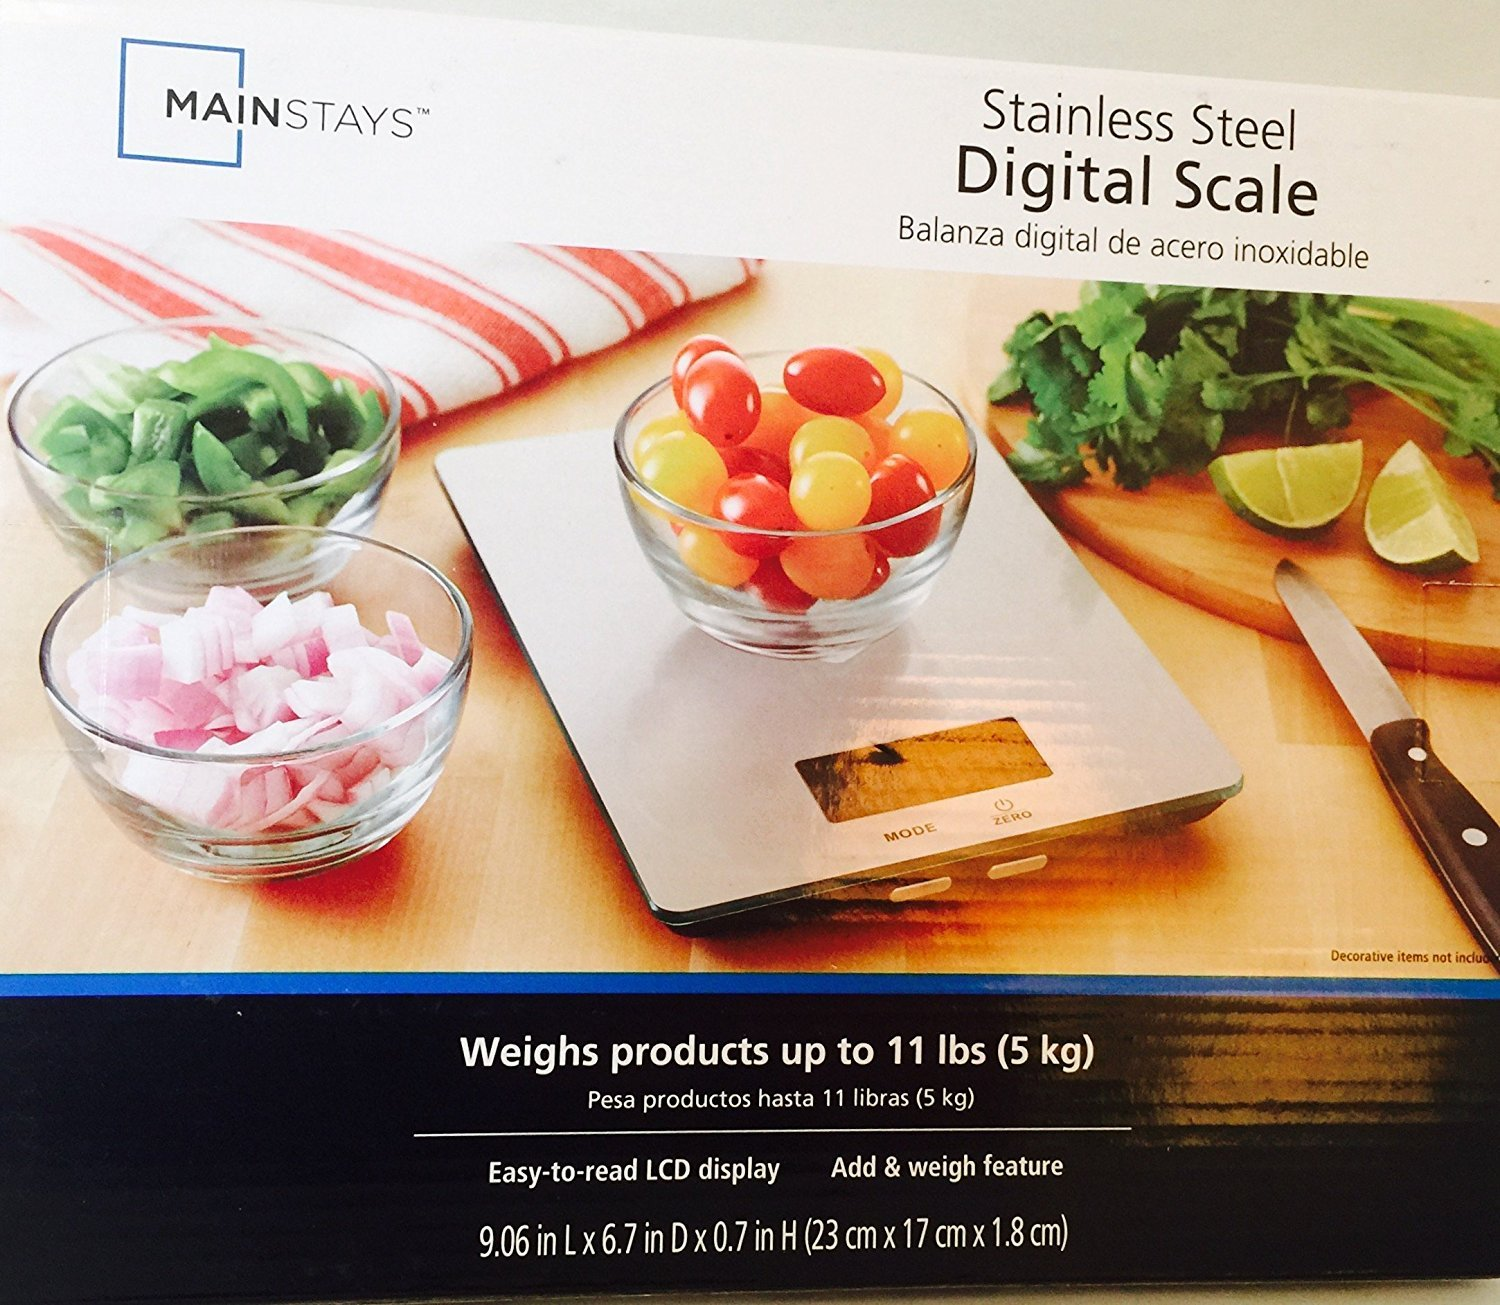 Digital Kitchen Food Scale Stainless Steel Platform With LCD Display, CO-Z 11lb / 5kg BALANZA DIGITAL DE ACERO INOXIDABLE